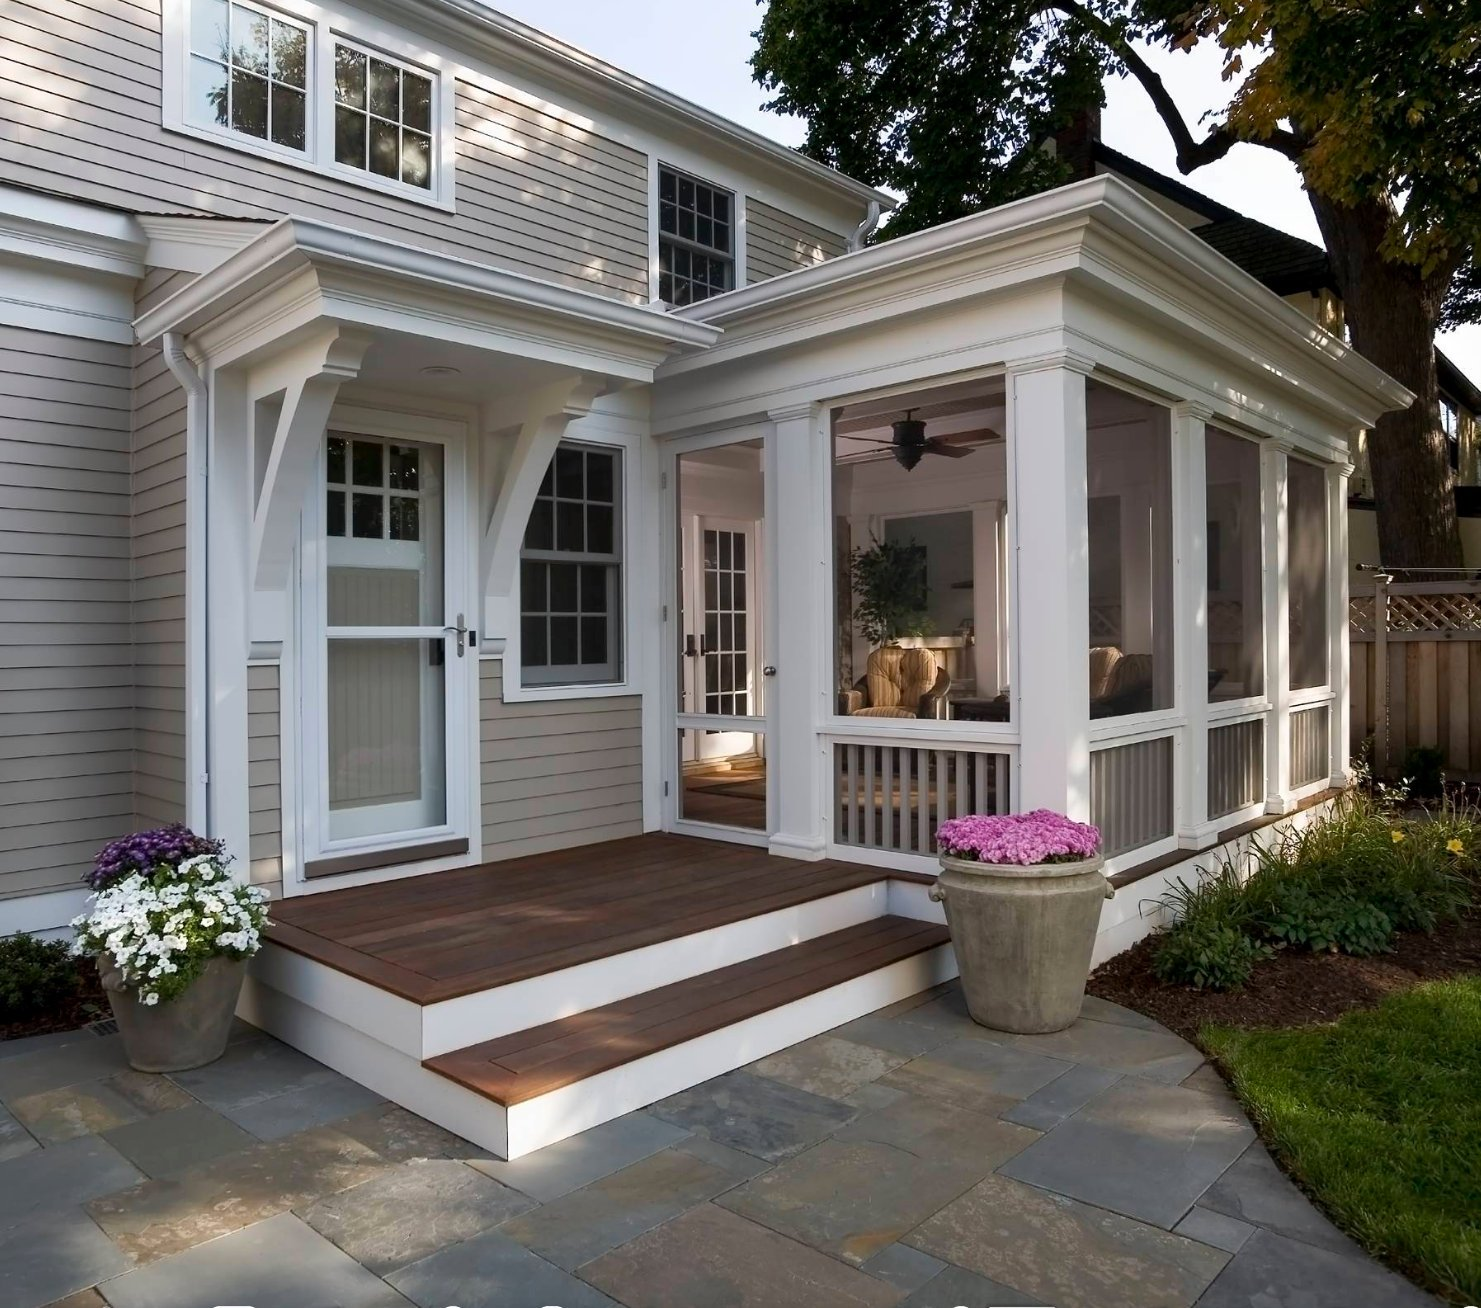 Small Front Porches On Houses: Creative Screened Porch Design Ideas